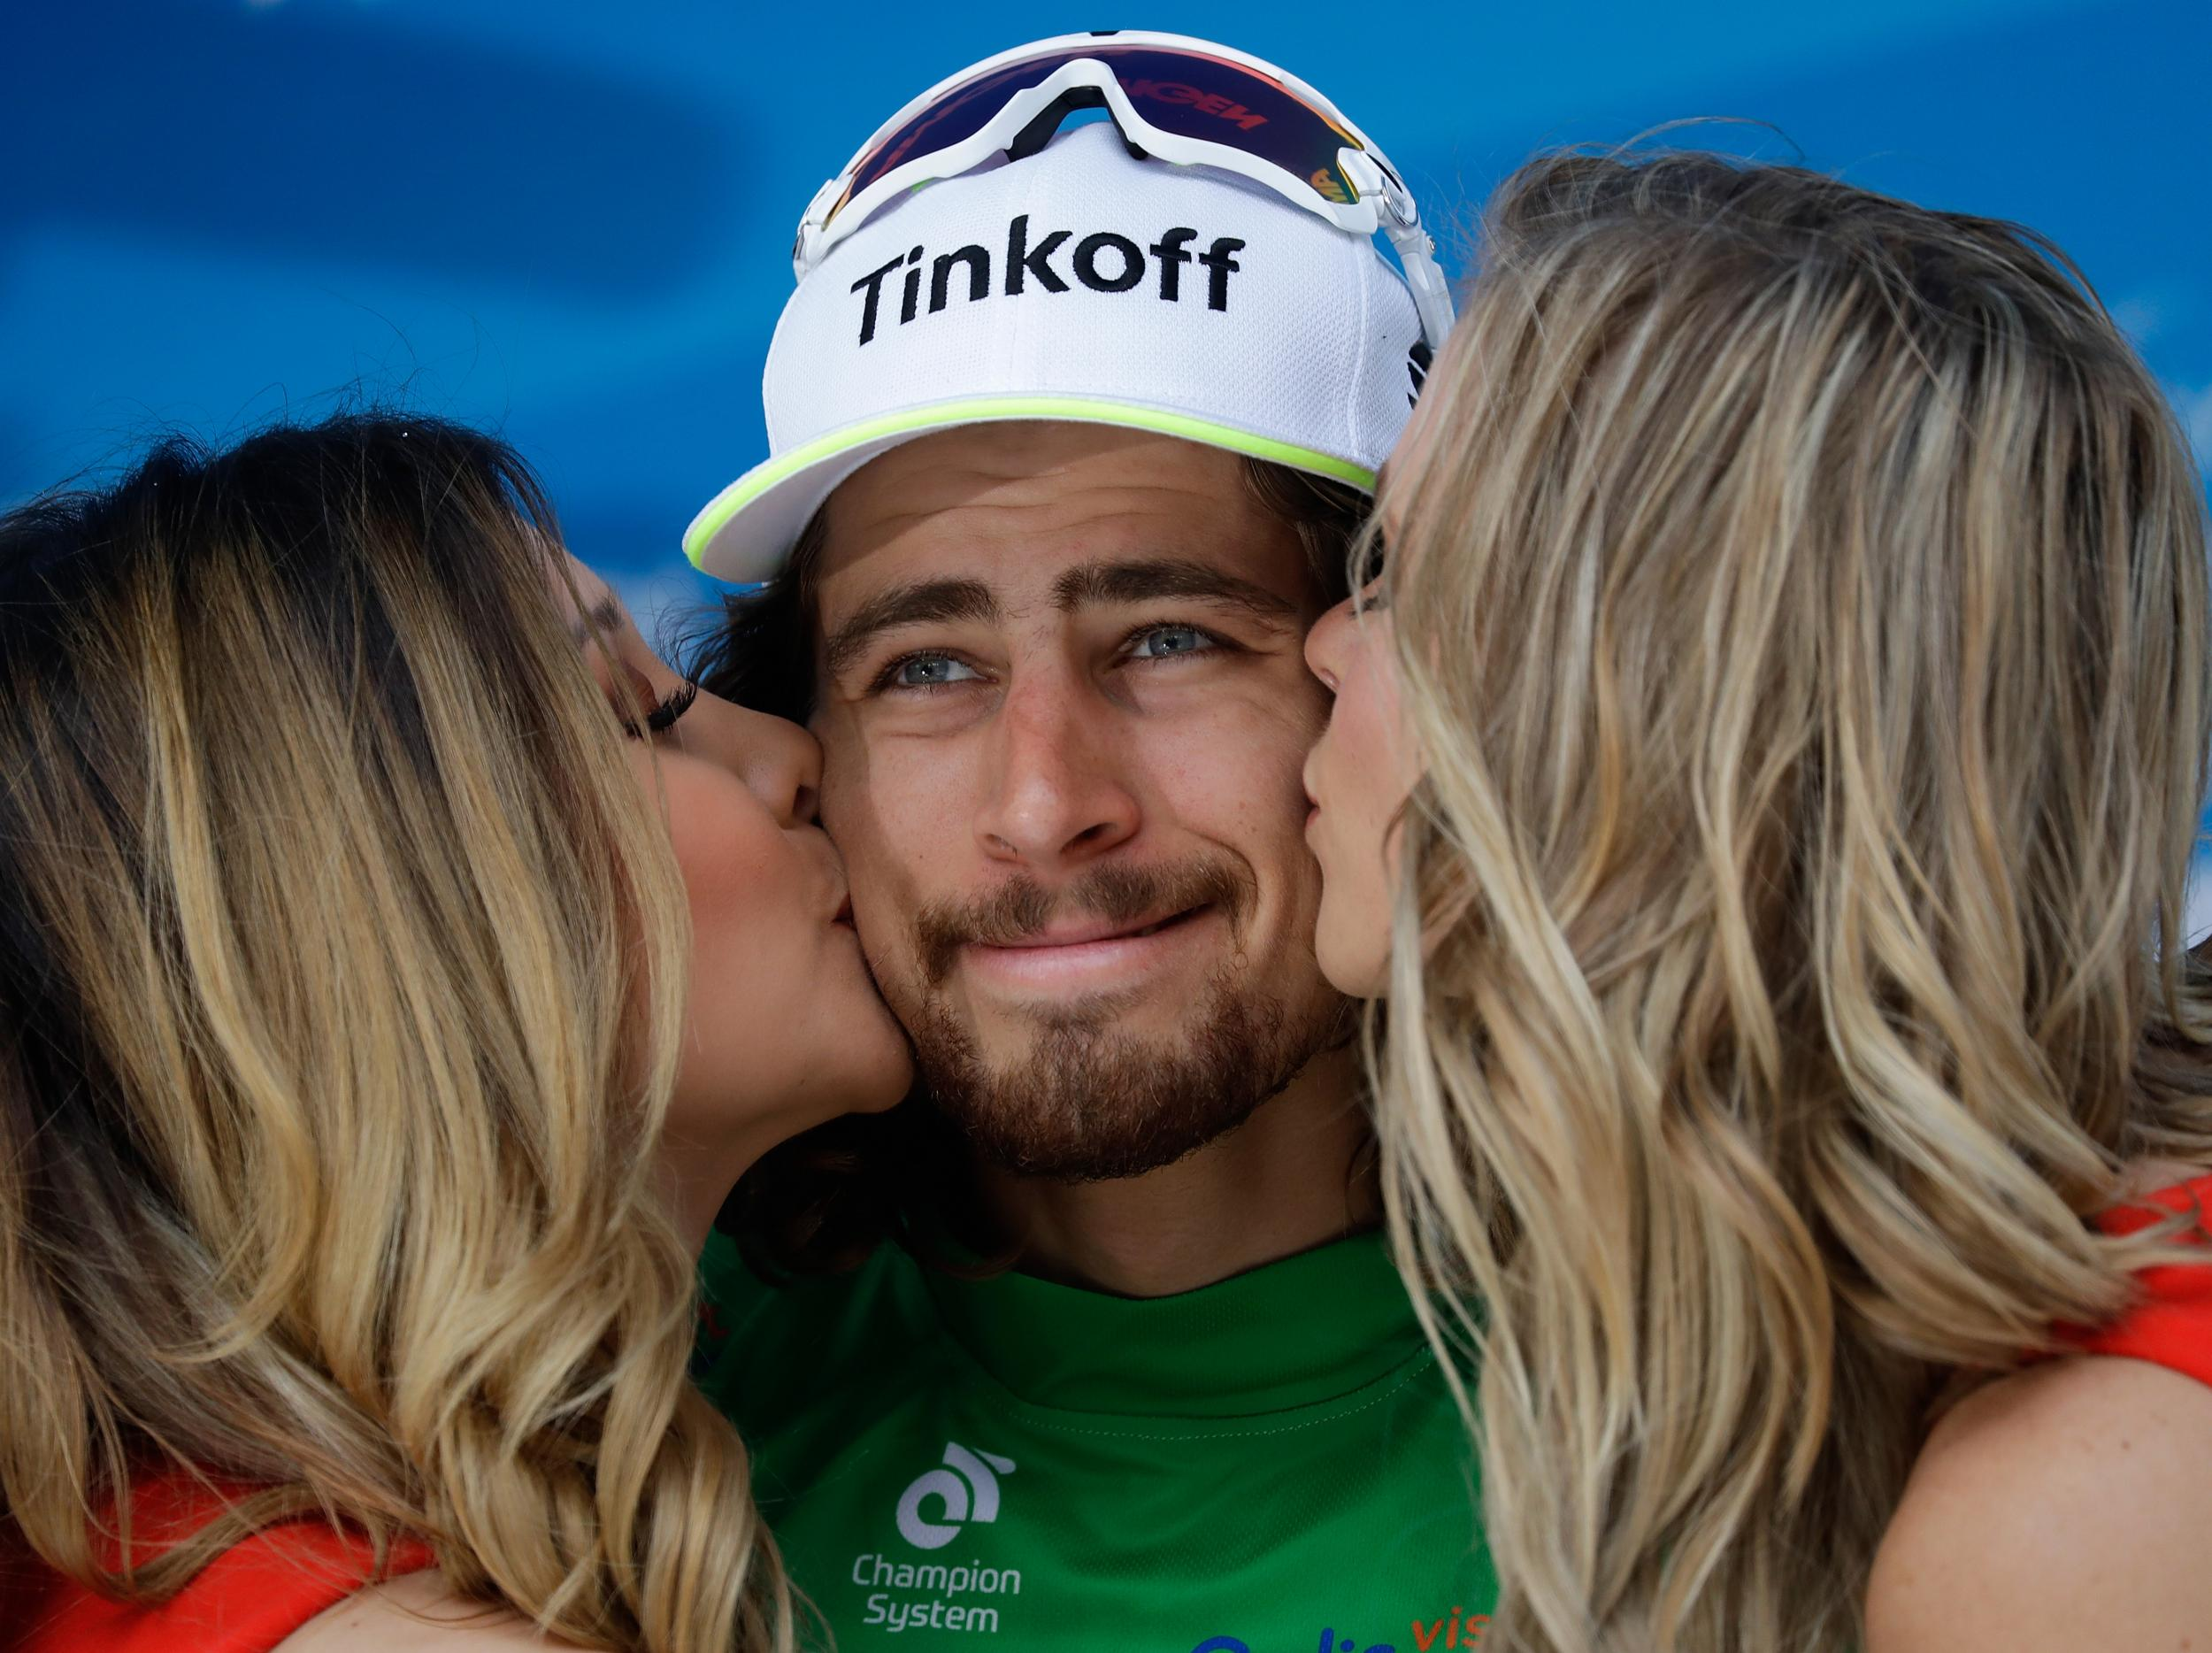 Meet Peter Sagan: The larger than life world champion disqualified for ending Mark Cavendish's Tour de France